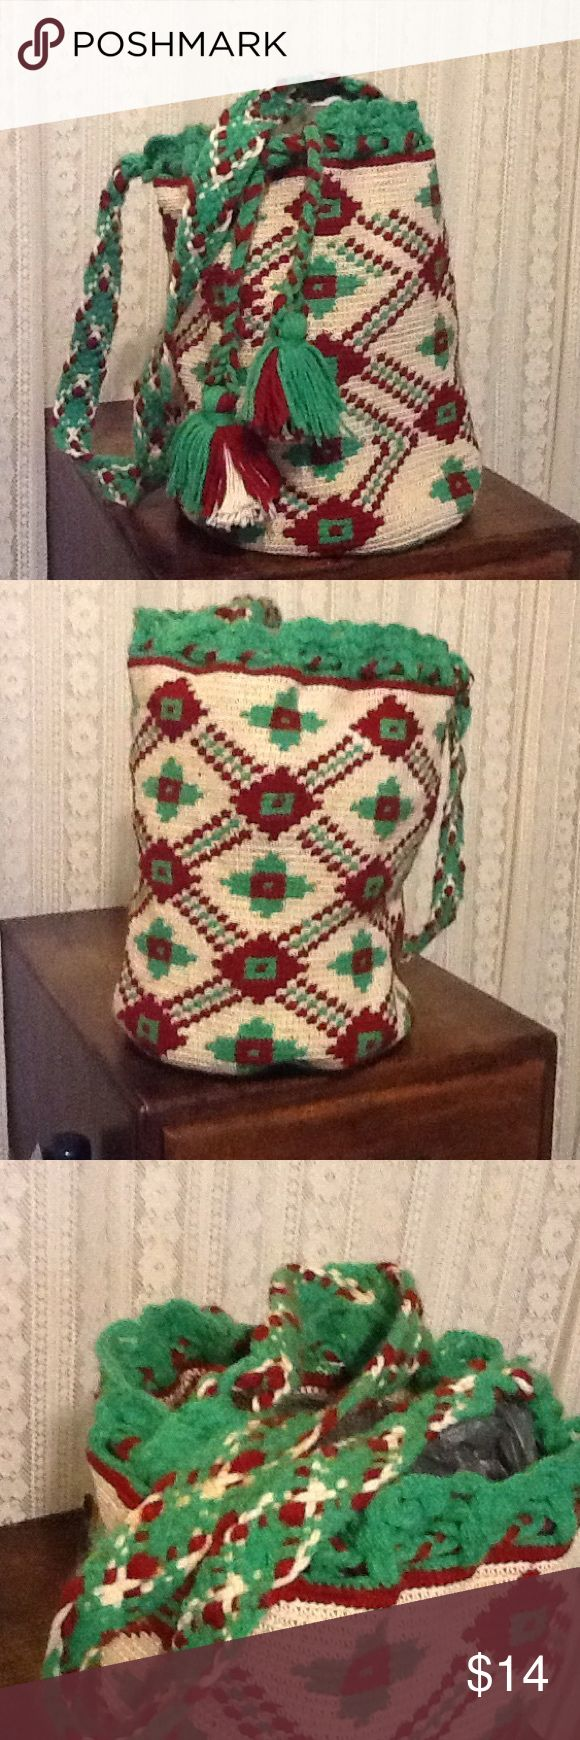 "Vintage Aztec Shoulder Handbag Purse Very cool and vintage ladies boho Aztec design handbag purse. Very cool design. Green cream and burgundy. It is a very good condition. 10"" tall, round bottom. Not including the handle. Unknown  Bags Shoulder Bags"